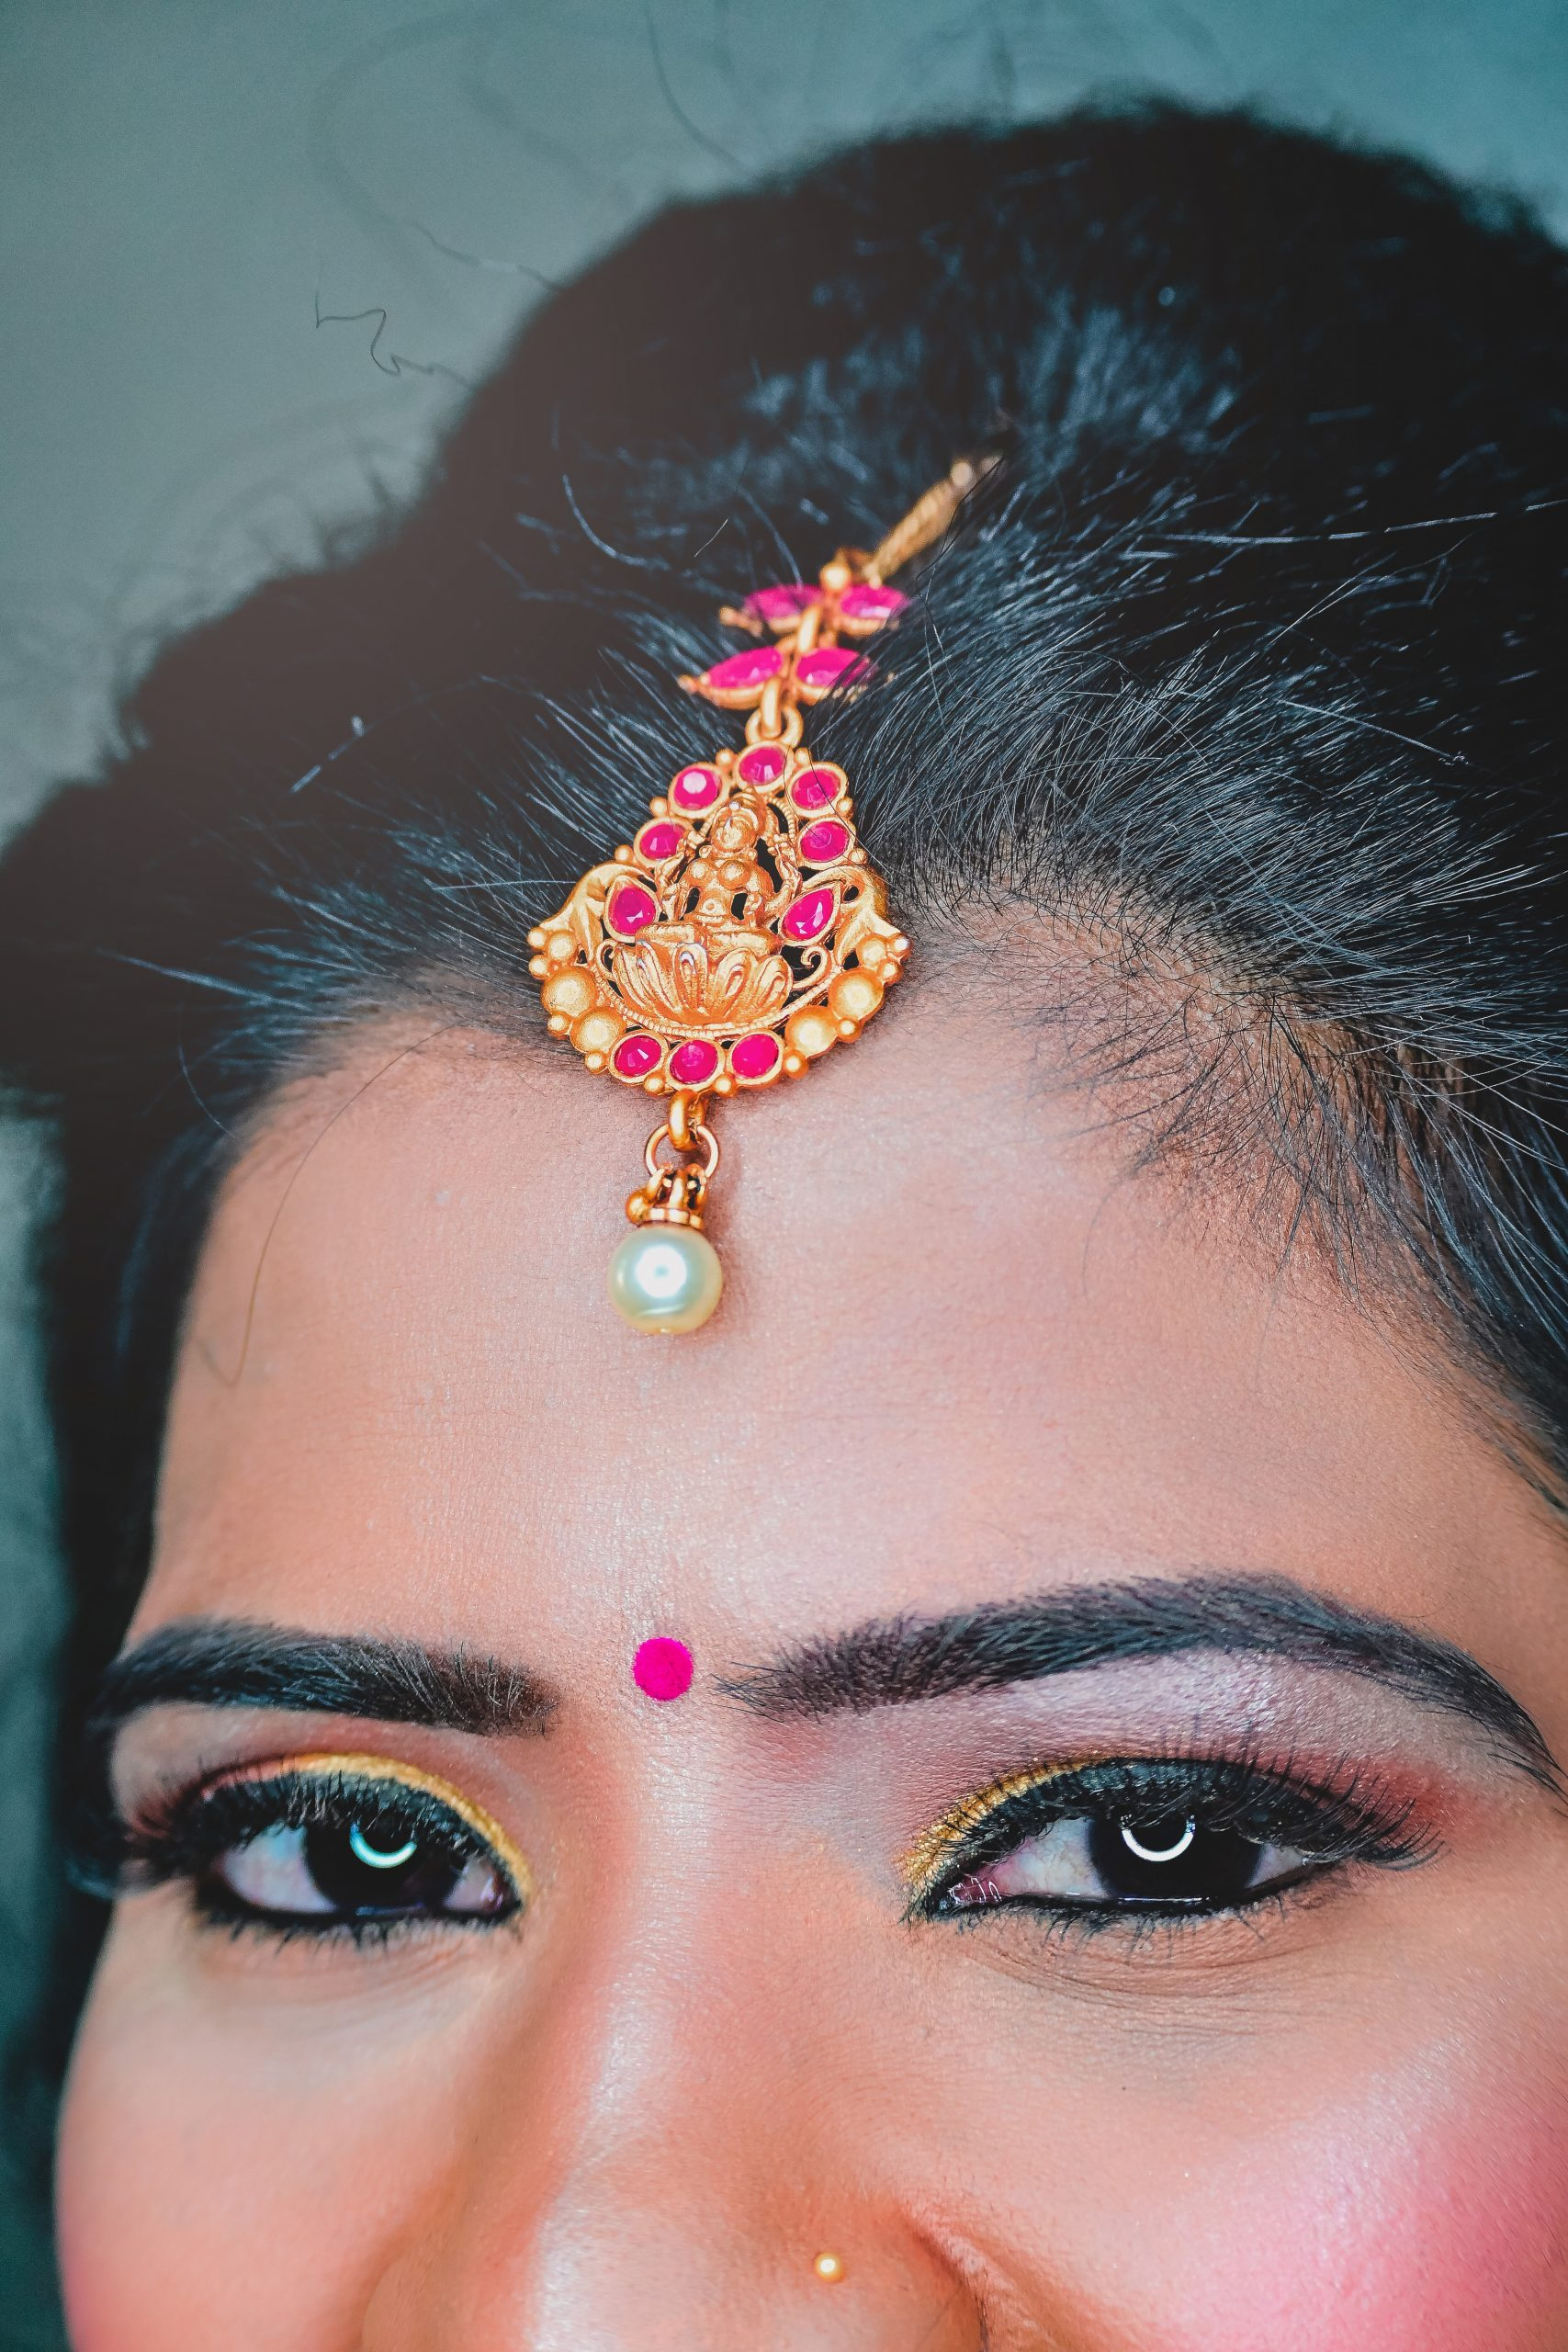 Eyes and jewelry of a woman